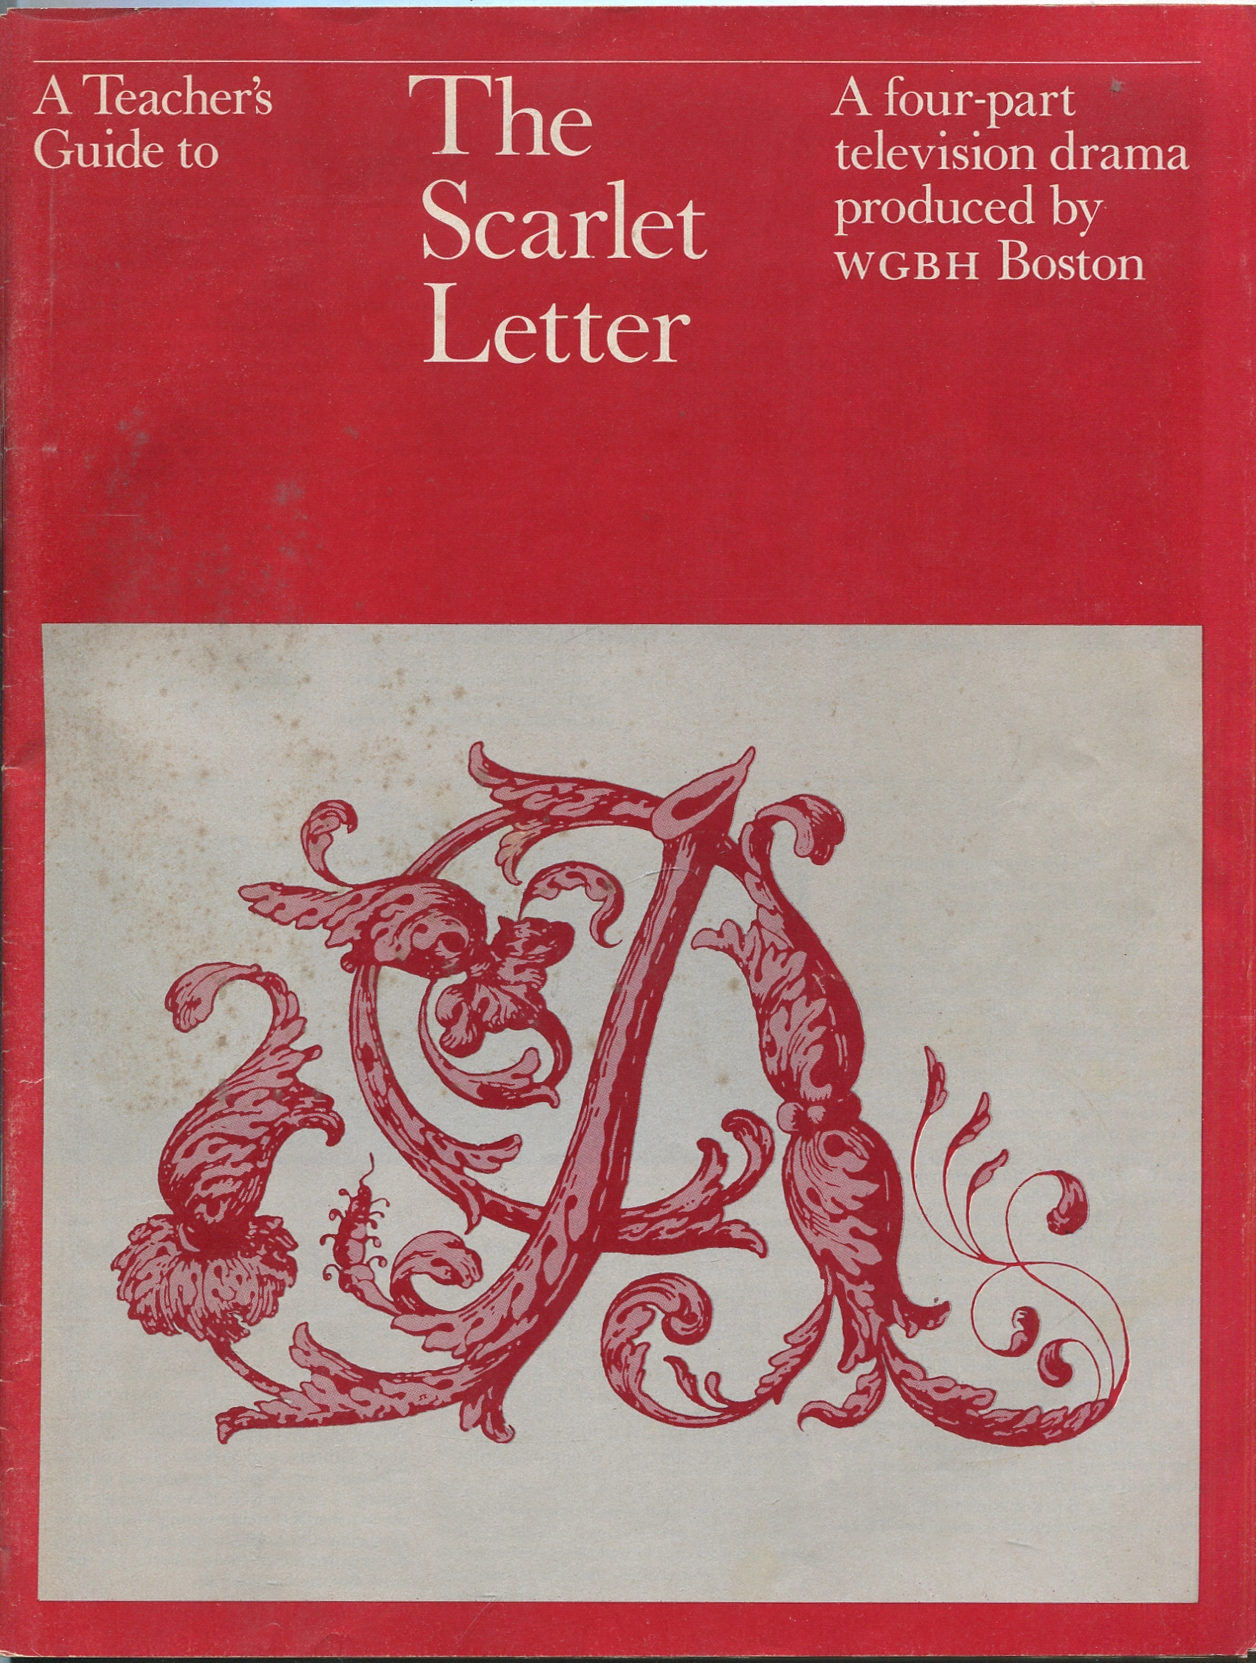 The Scarlet Letter Full Book.The Scarlet Letter A Teacher S Guide A Four Part Television Drama Produced By Wgbh Boston On Between The Covers